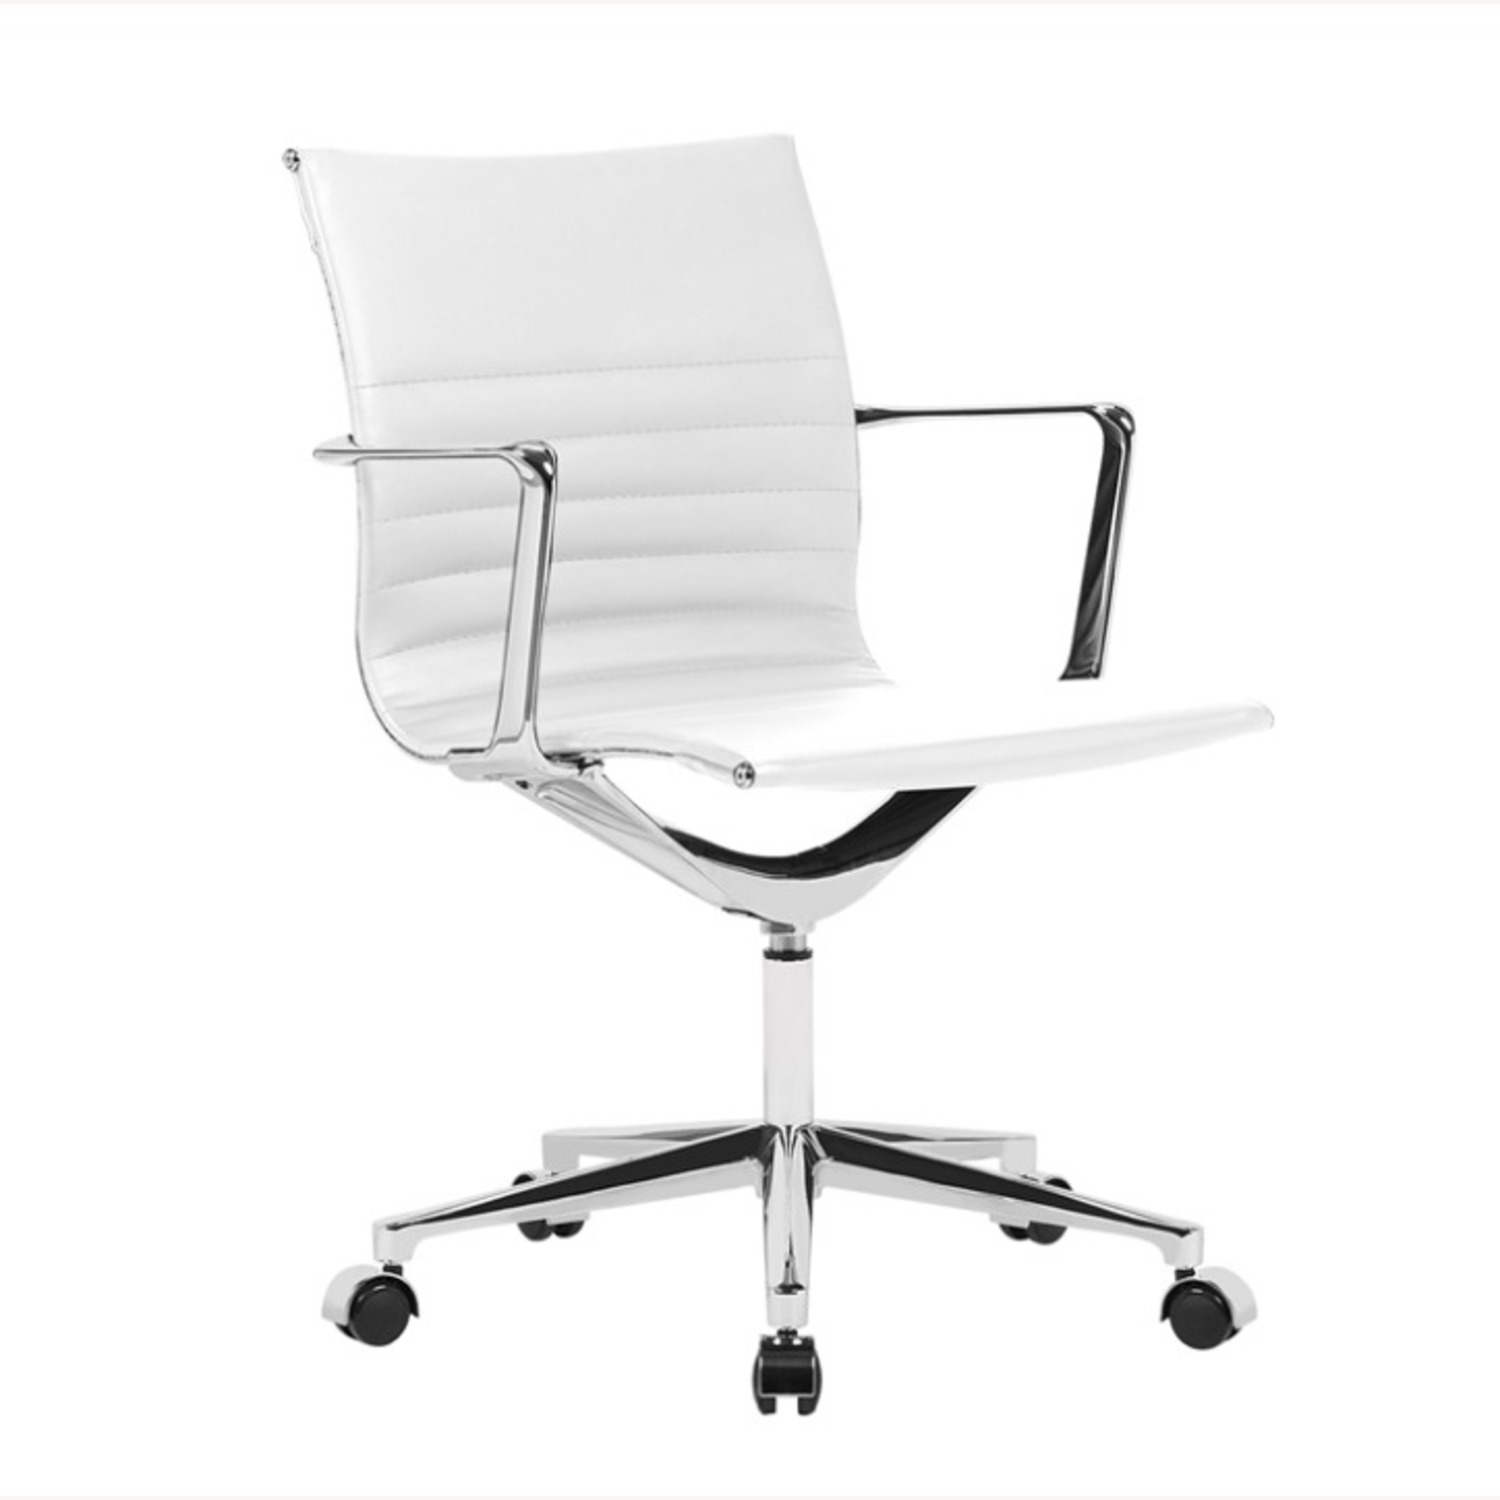 Office Chair In Mid Back W/ White Leatherette - image-1